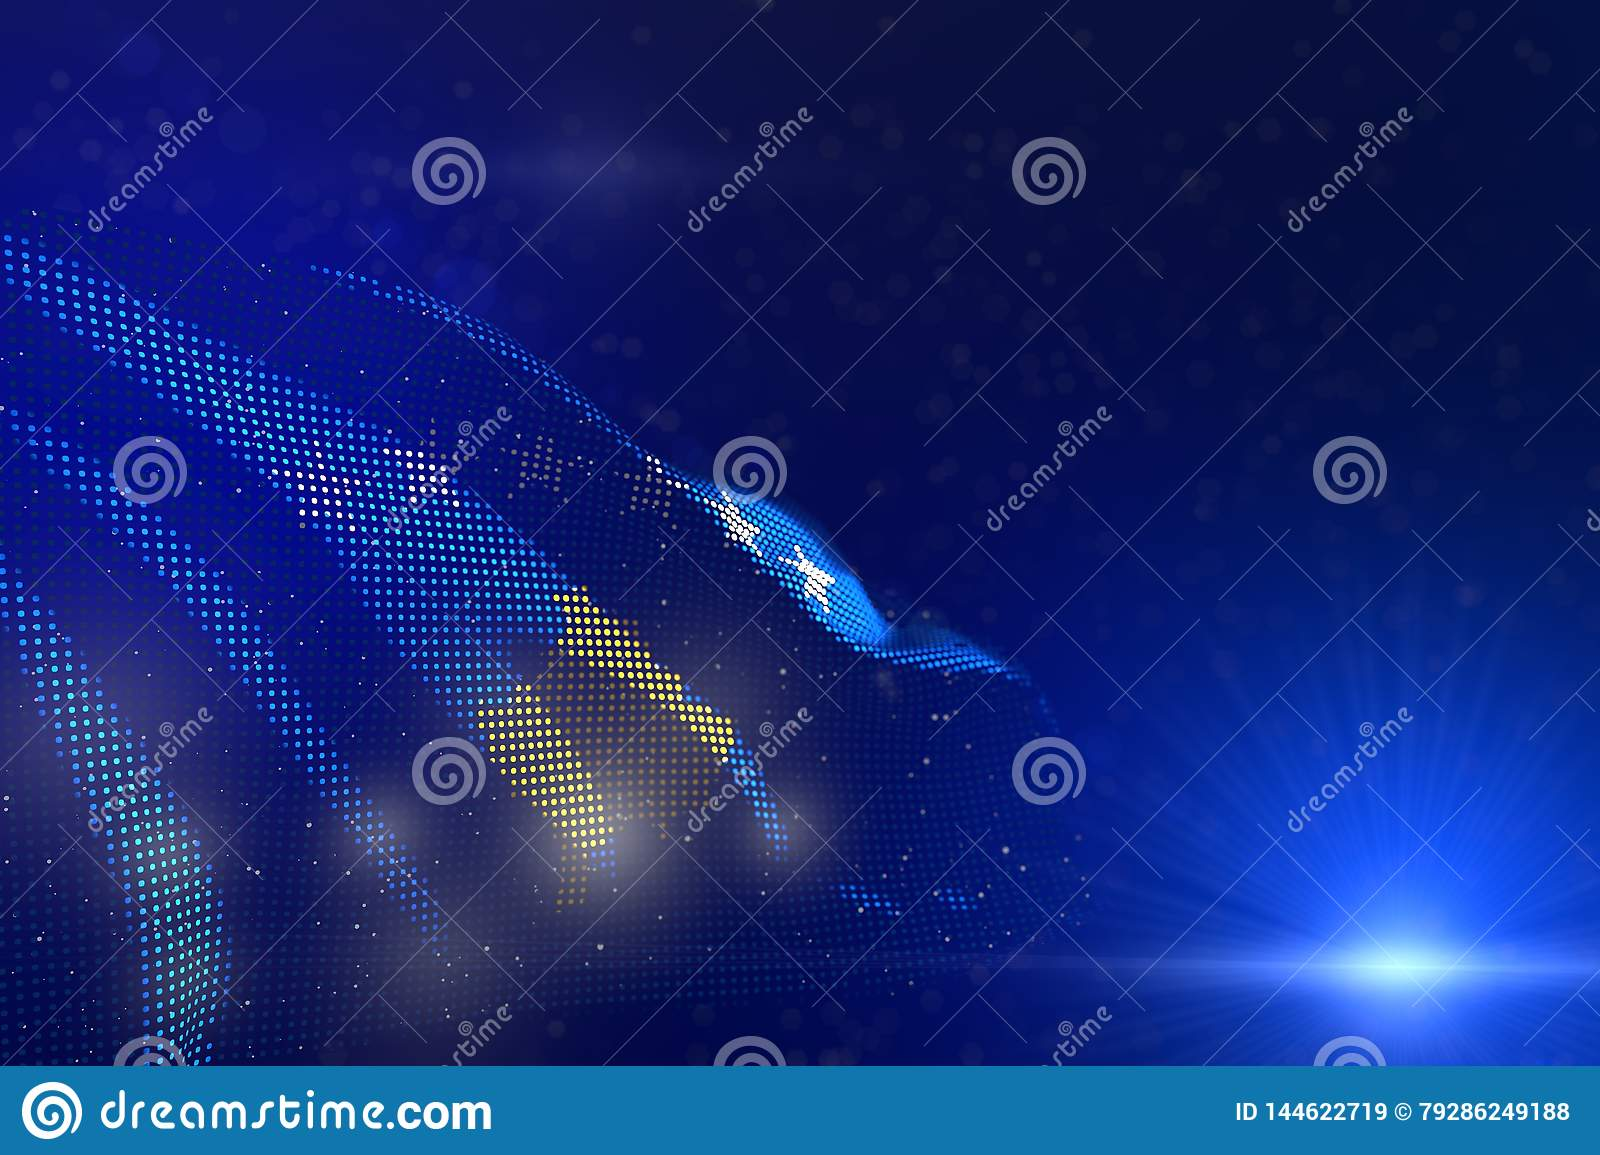 Pretty labor day flag 3d illustration - modern picture of Kosovo flag of dots waving on blue - selective focus and space for